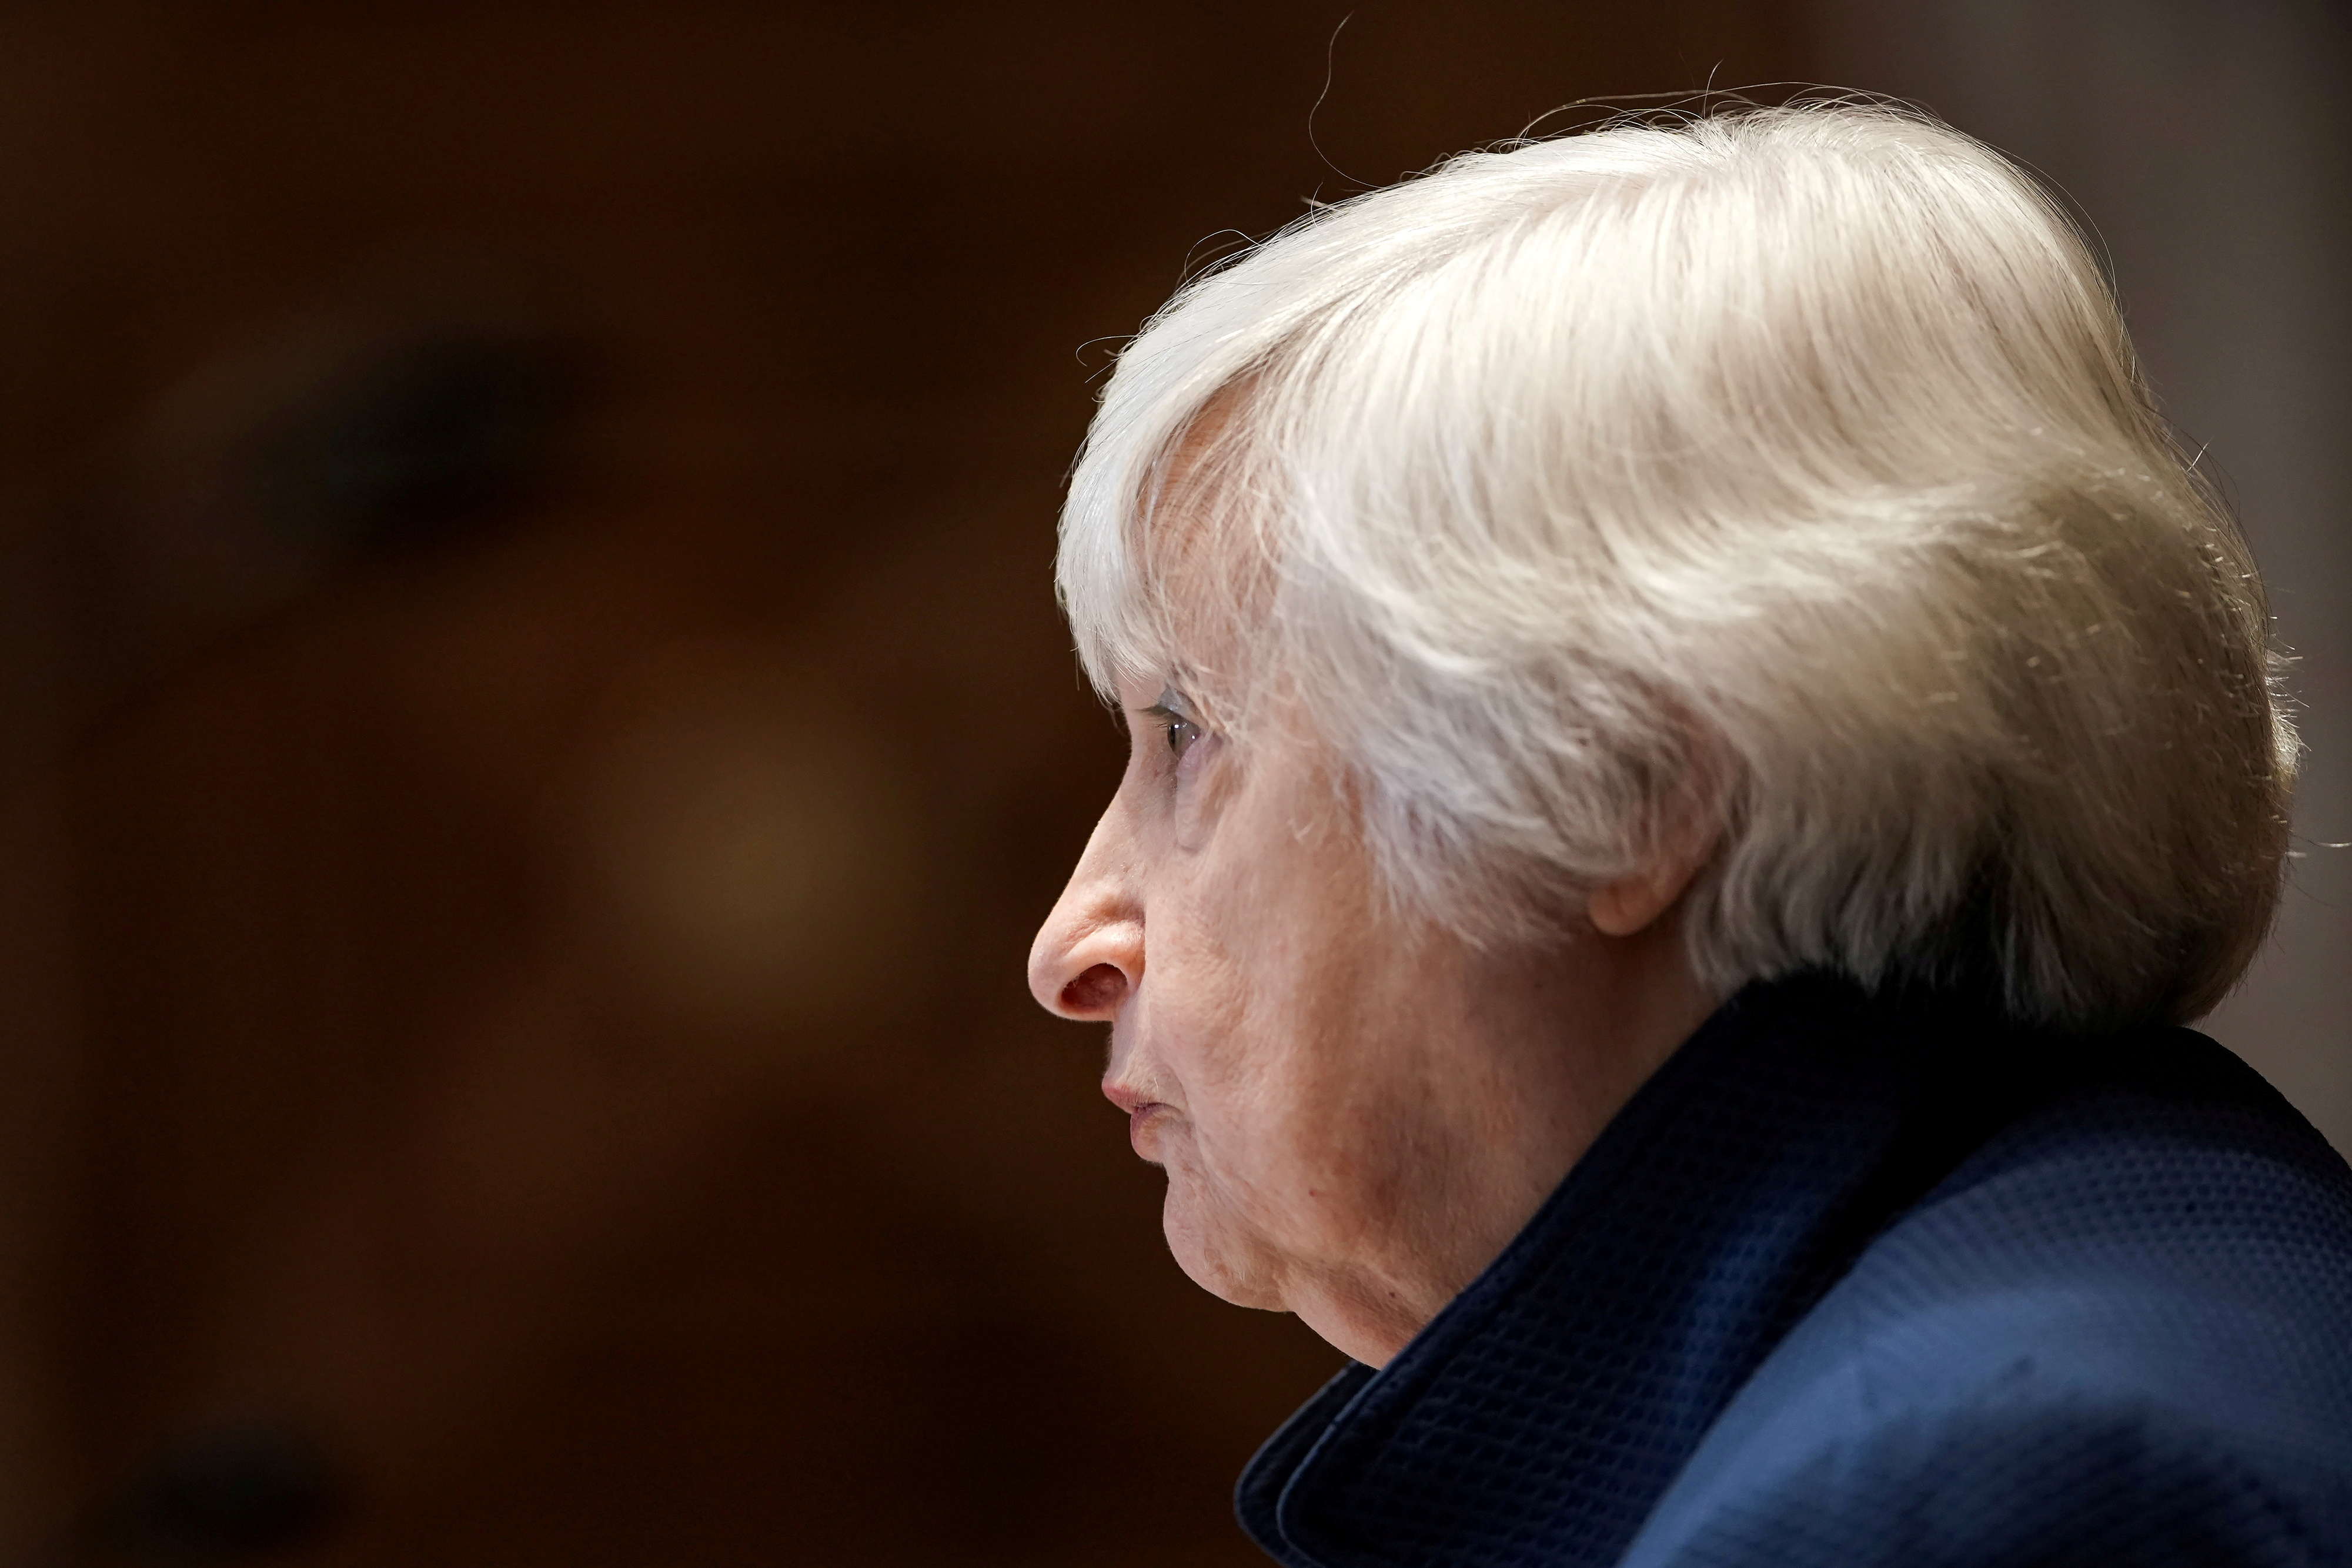 U.S. Treasury Secretary Janet Yellen looks on during the Senate Appropriations Subcommittee hearing to examine the FY22 budget request for the Treasury Department on Capitol Hill in Washington, DC, U.S., June 23, 2021.  Greg Nash/Pool via REUTERS/File Photo - RC2ZGO95RAXX